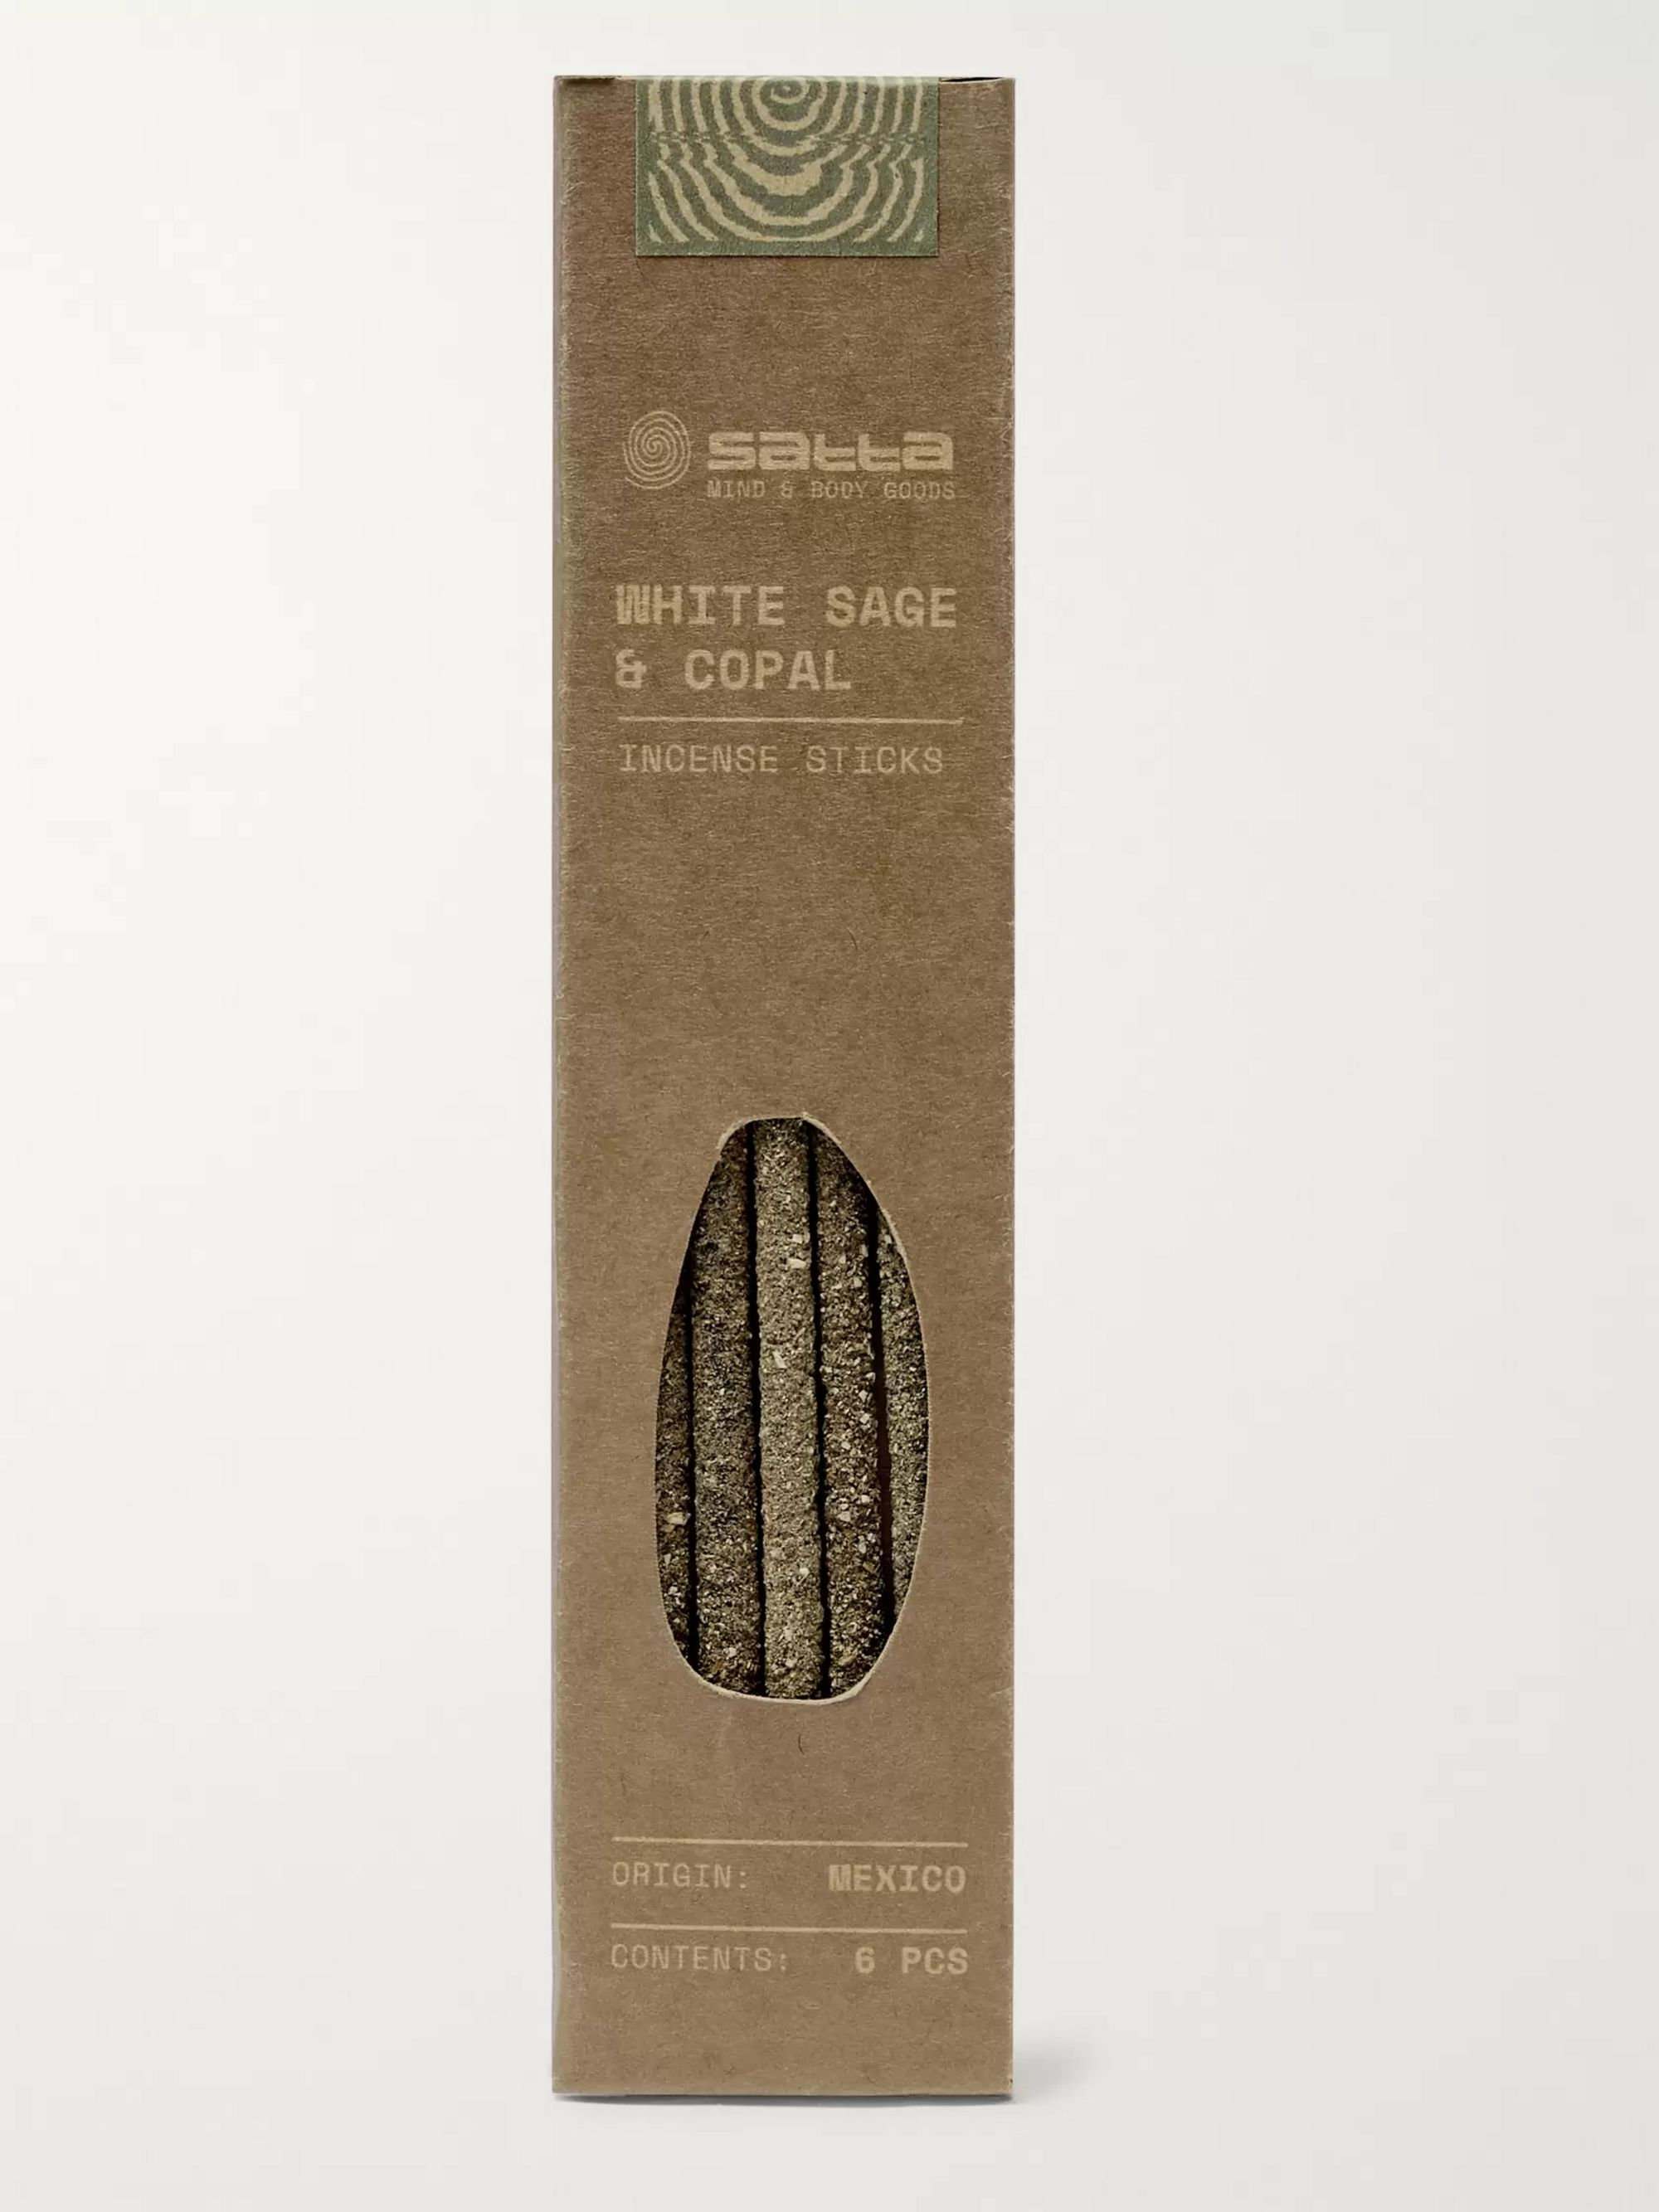 Satta White Sage and Copal Incense Sticks